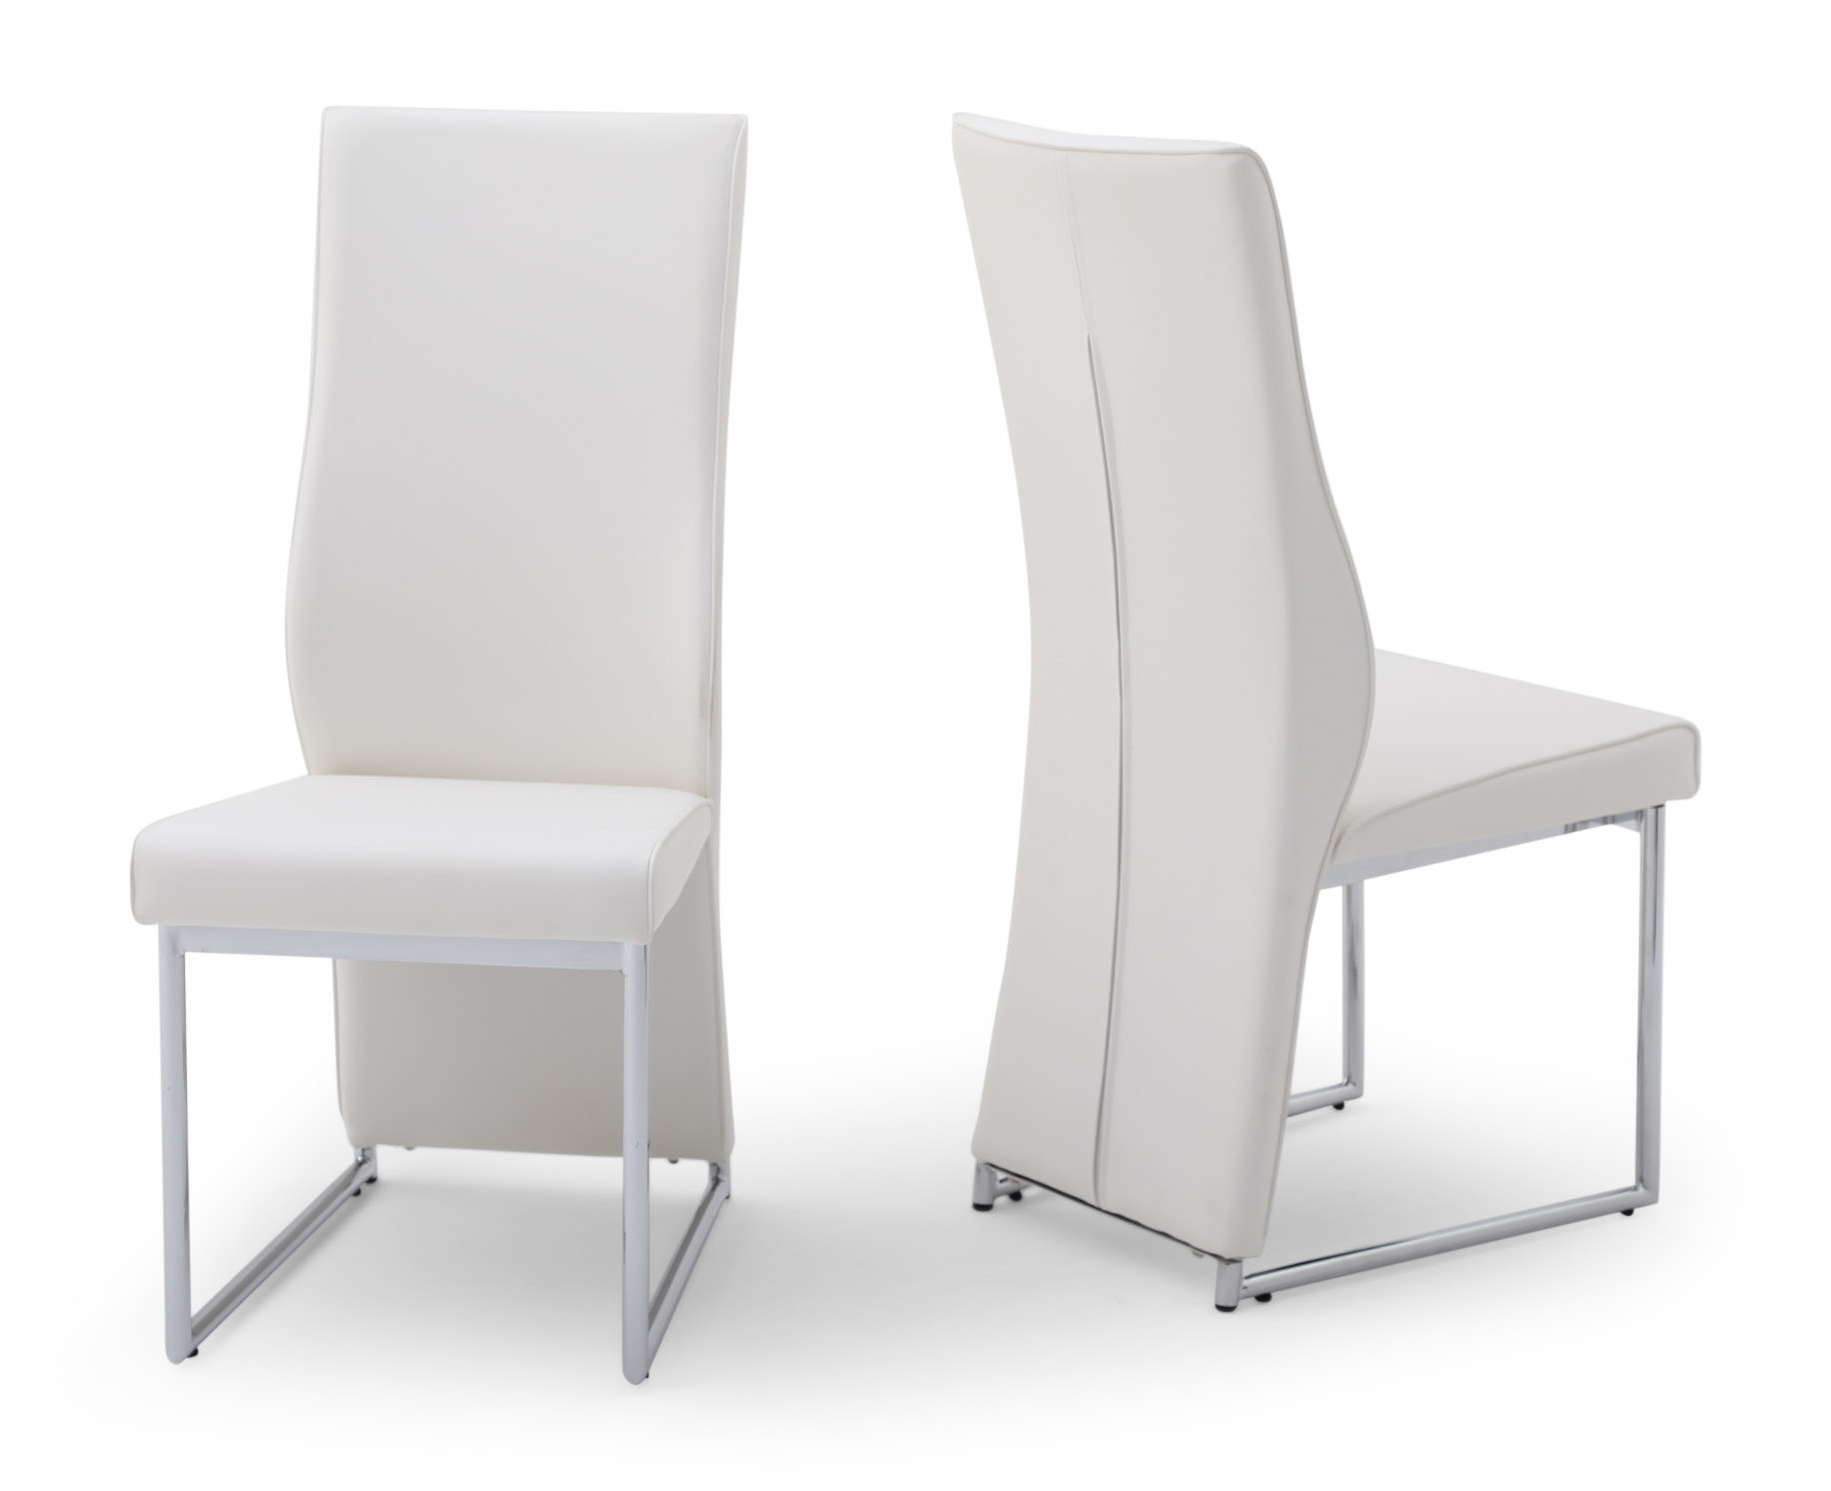 Imperial White High Back Leather Dining Chair with Most Popular White Leather Dining Chairs